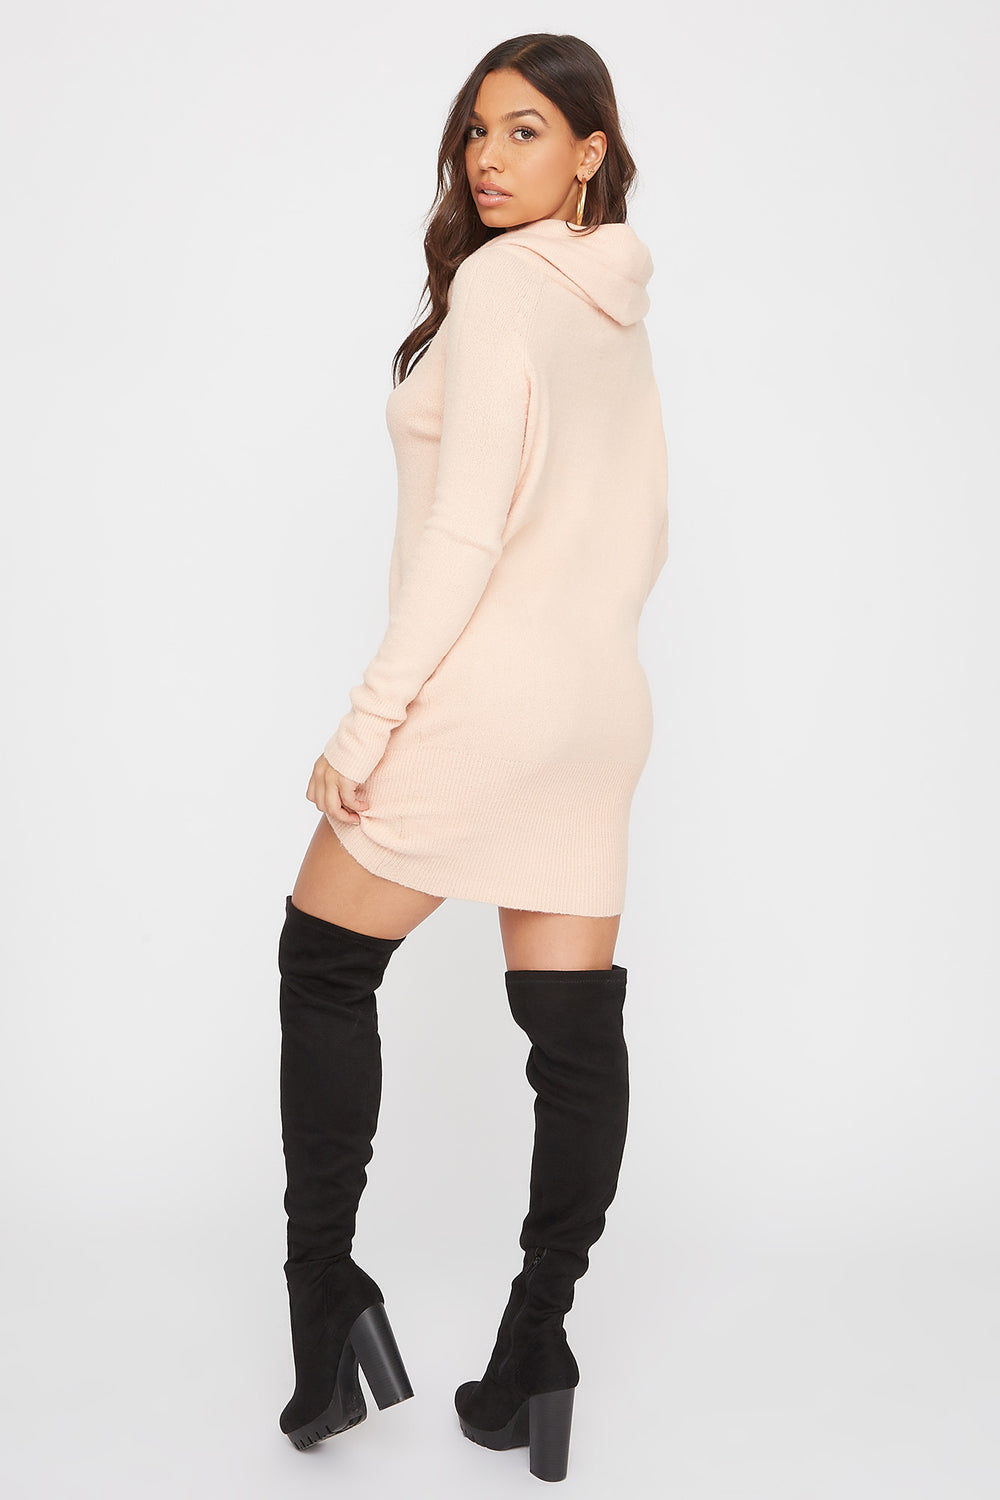 2-Way Mossy Cowl Neck Sweater Dress Dusty Rose